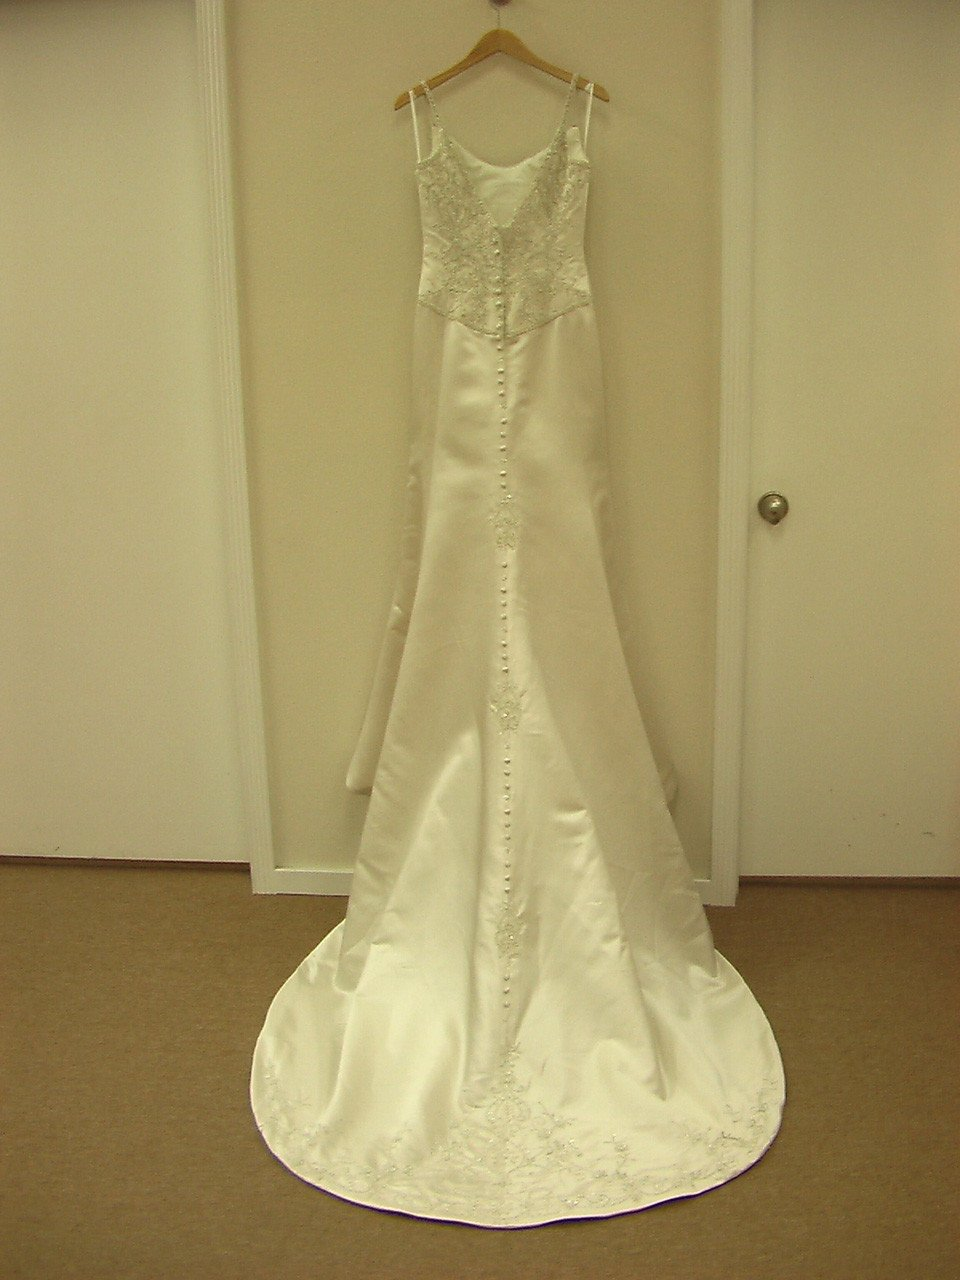 Allure 8395 Cafe/Silver size 8 In Stock Wedding Dress - Tom's Bridal